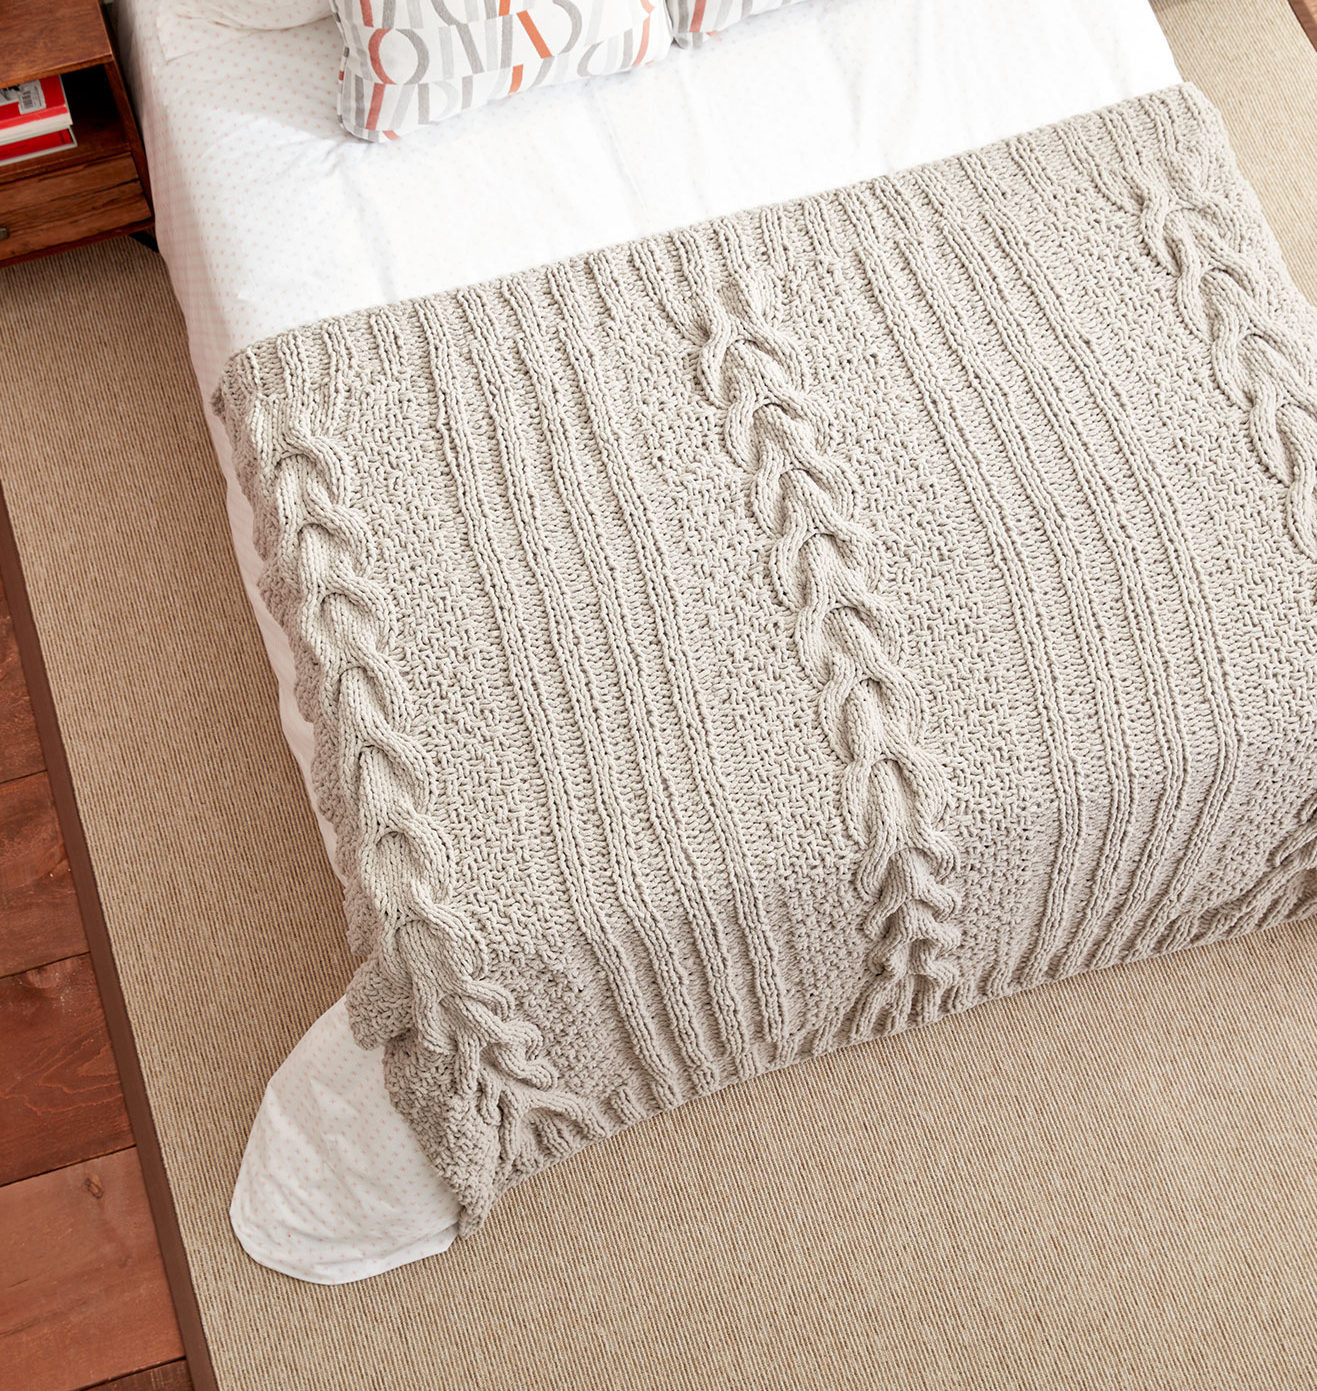 Best Of Cable Afghan Knitting Patterns Cable Knitting Patterns Of Beautiful 41 Models Cable Knitting Patterns